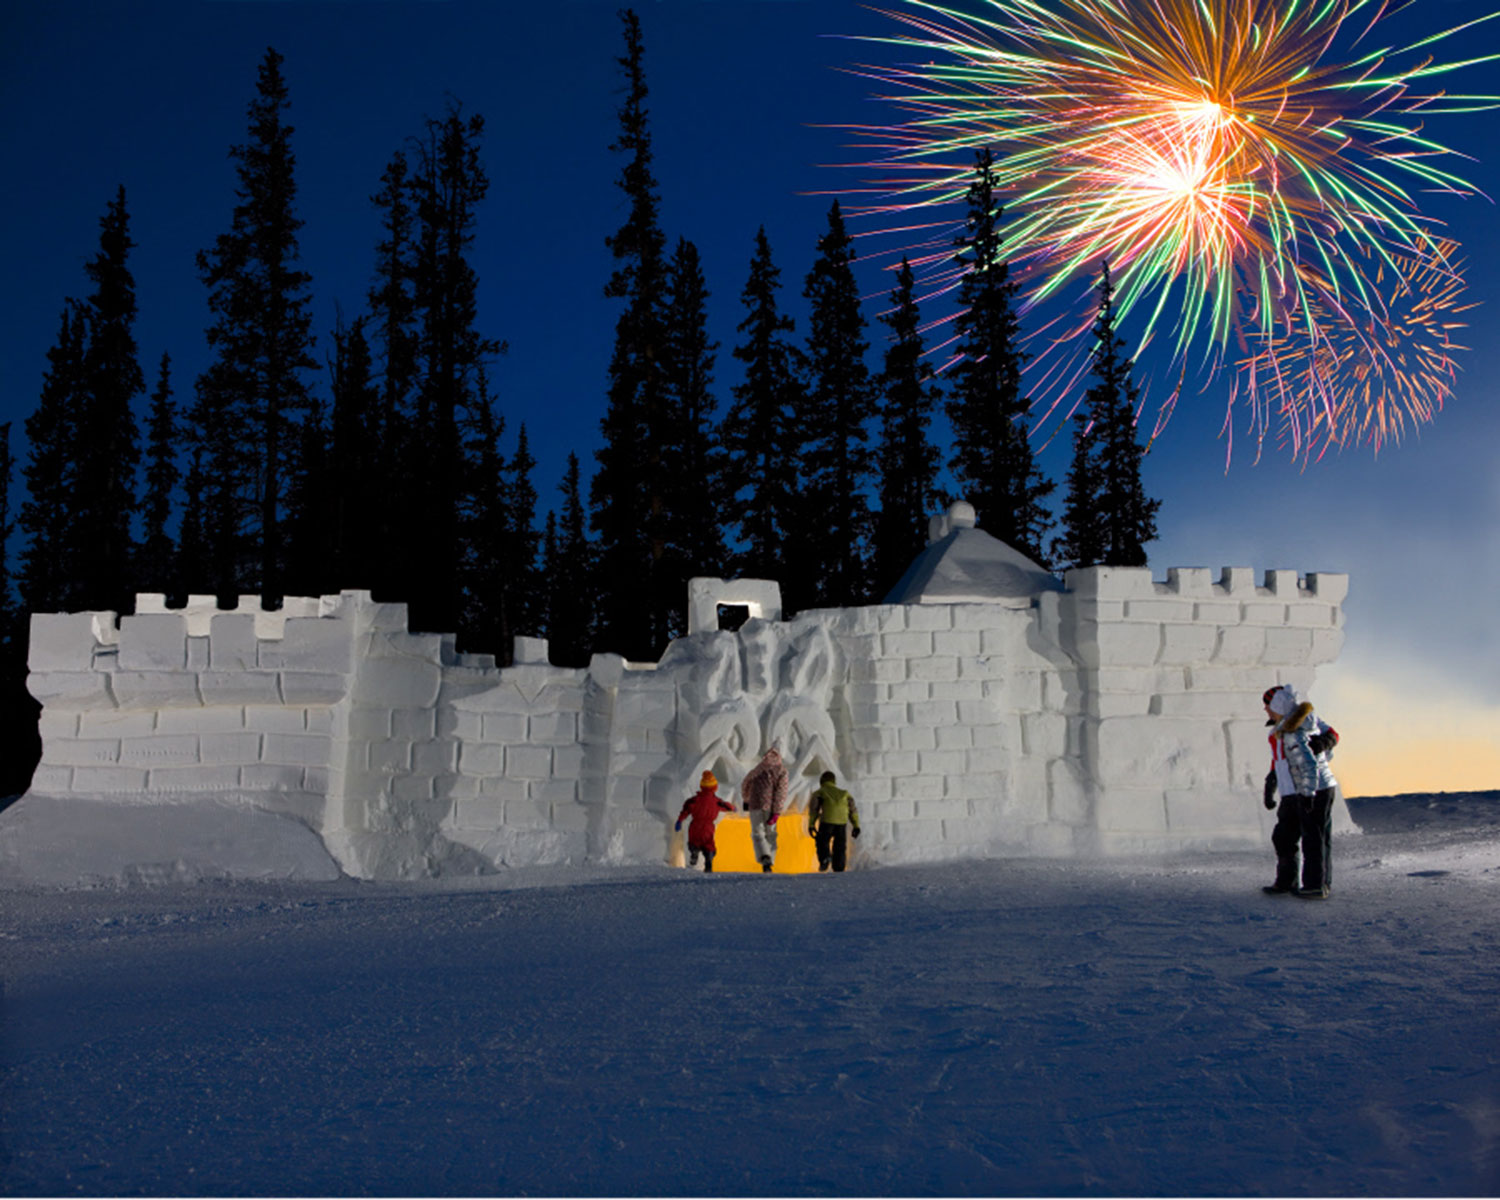 The world's largest snow fort at Keystone Resort, one of the best family ski resorts in Colorado